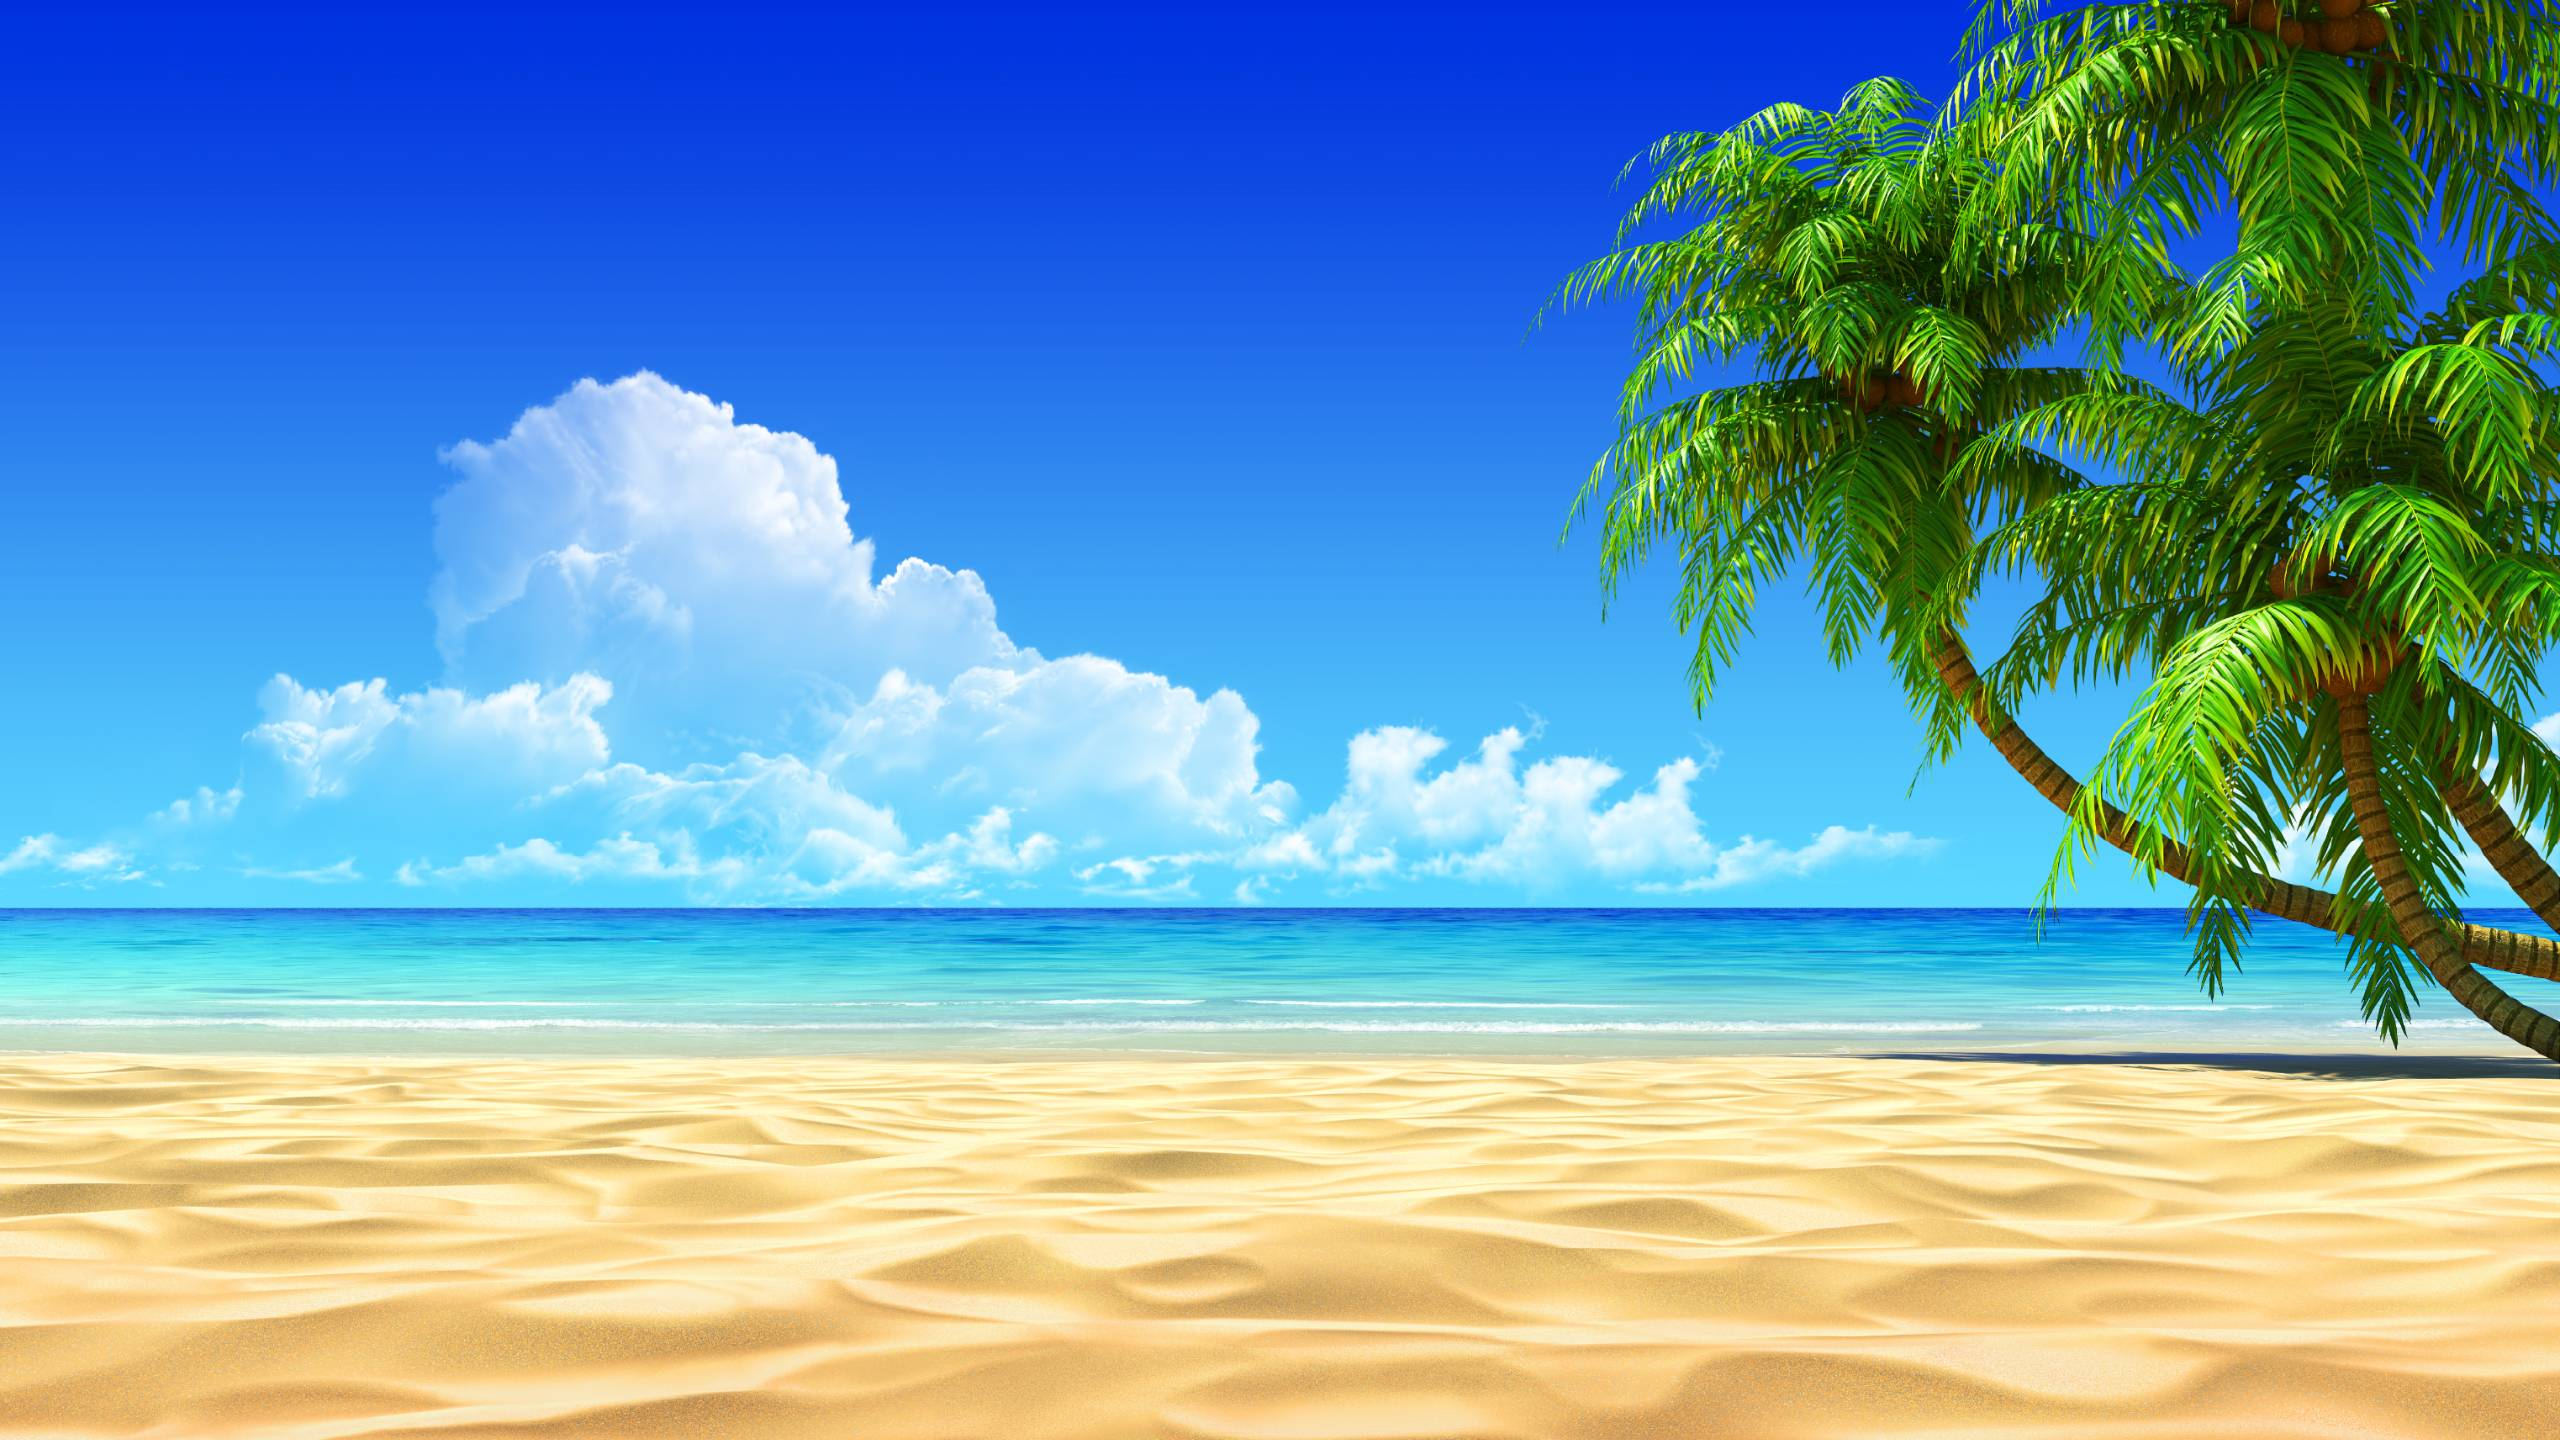 Nice wallpapers Tropical 2560x1440px